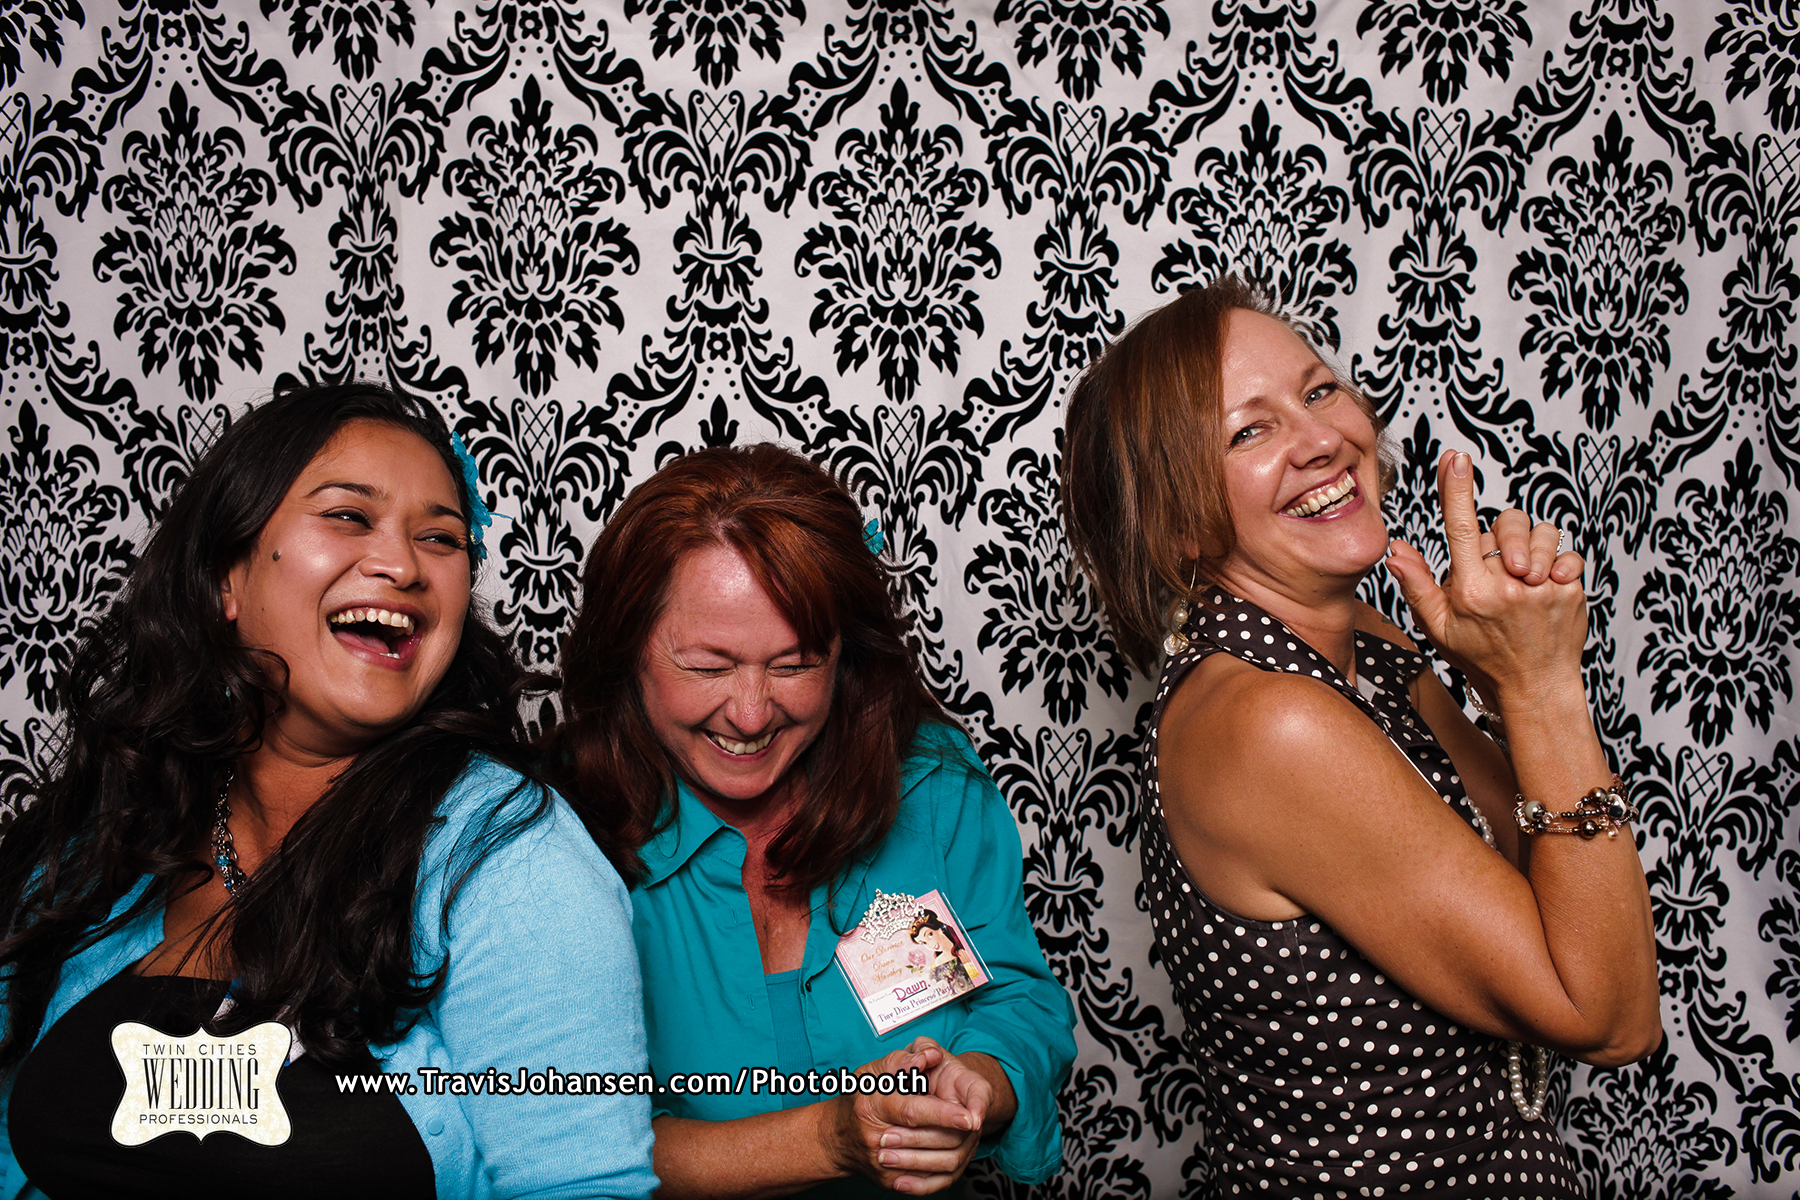 Photobooth Al Travis Johansen Cinema Photo Minneapolis Wedding Photographer Videographer And Film Production Company